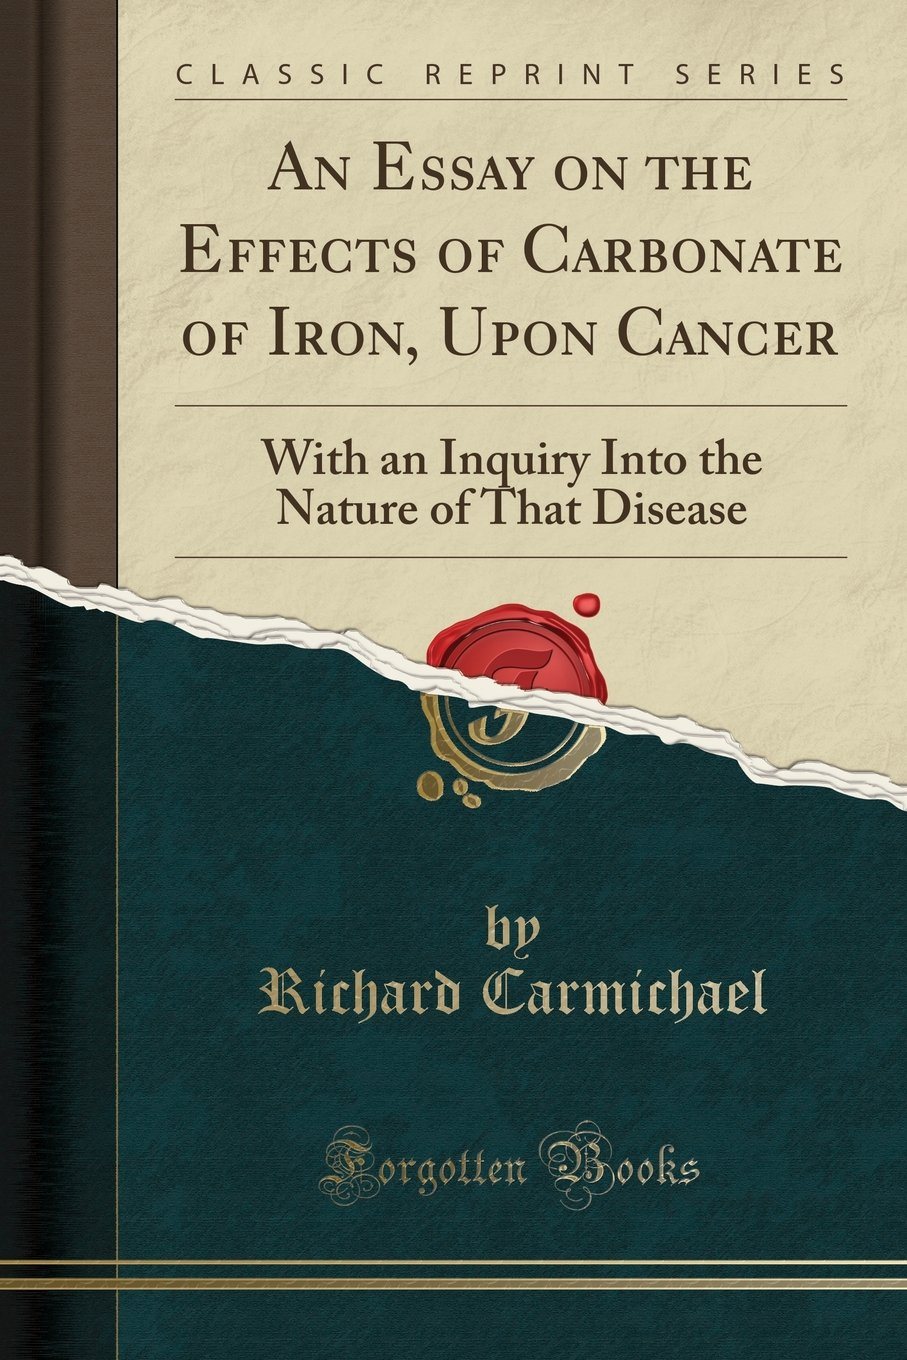 An Essay On The Effects Of Carbonate Of Iron Upon Cancer